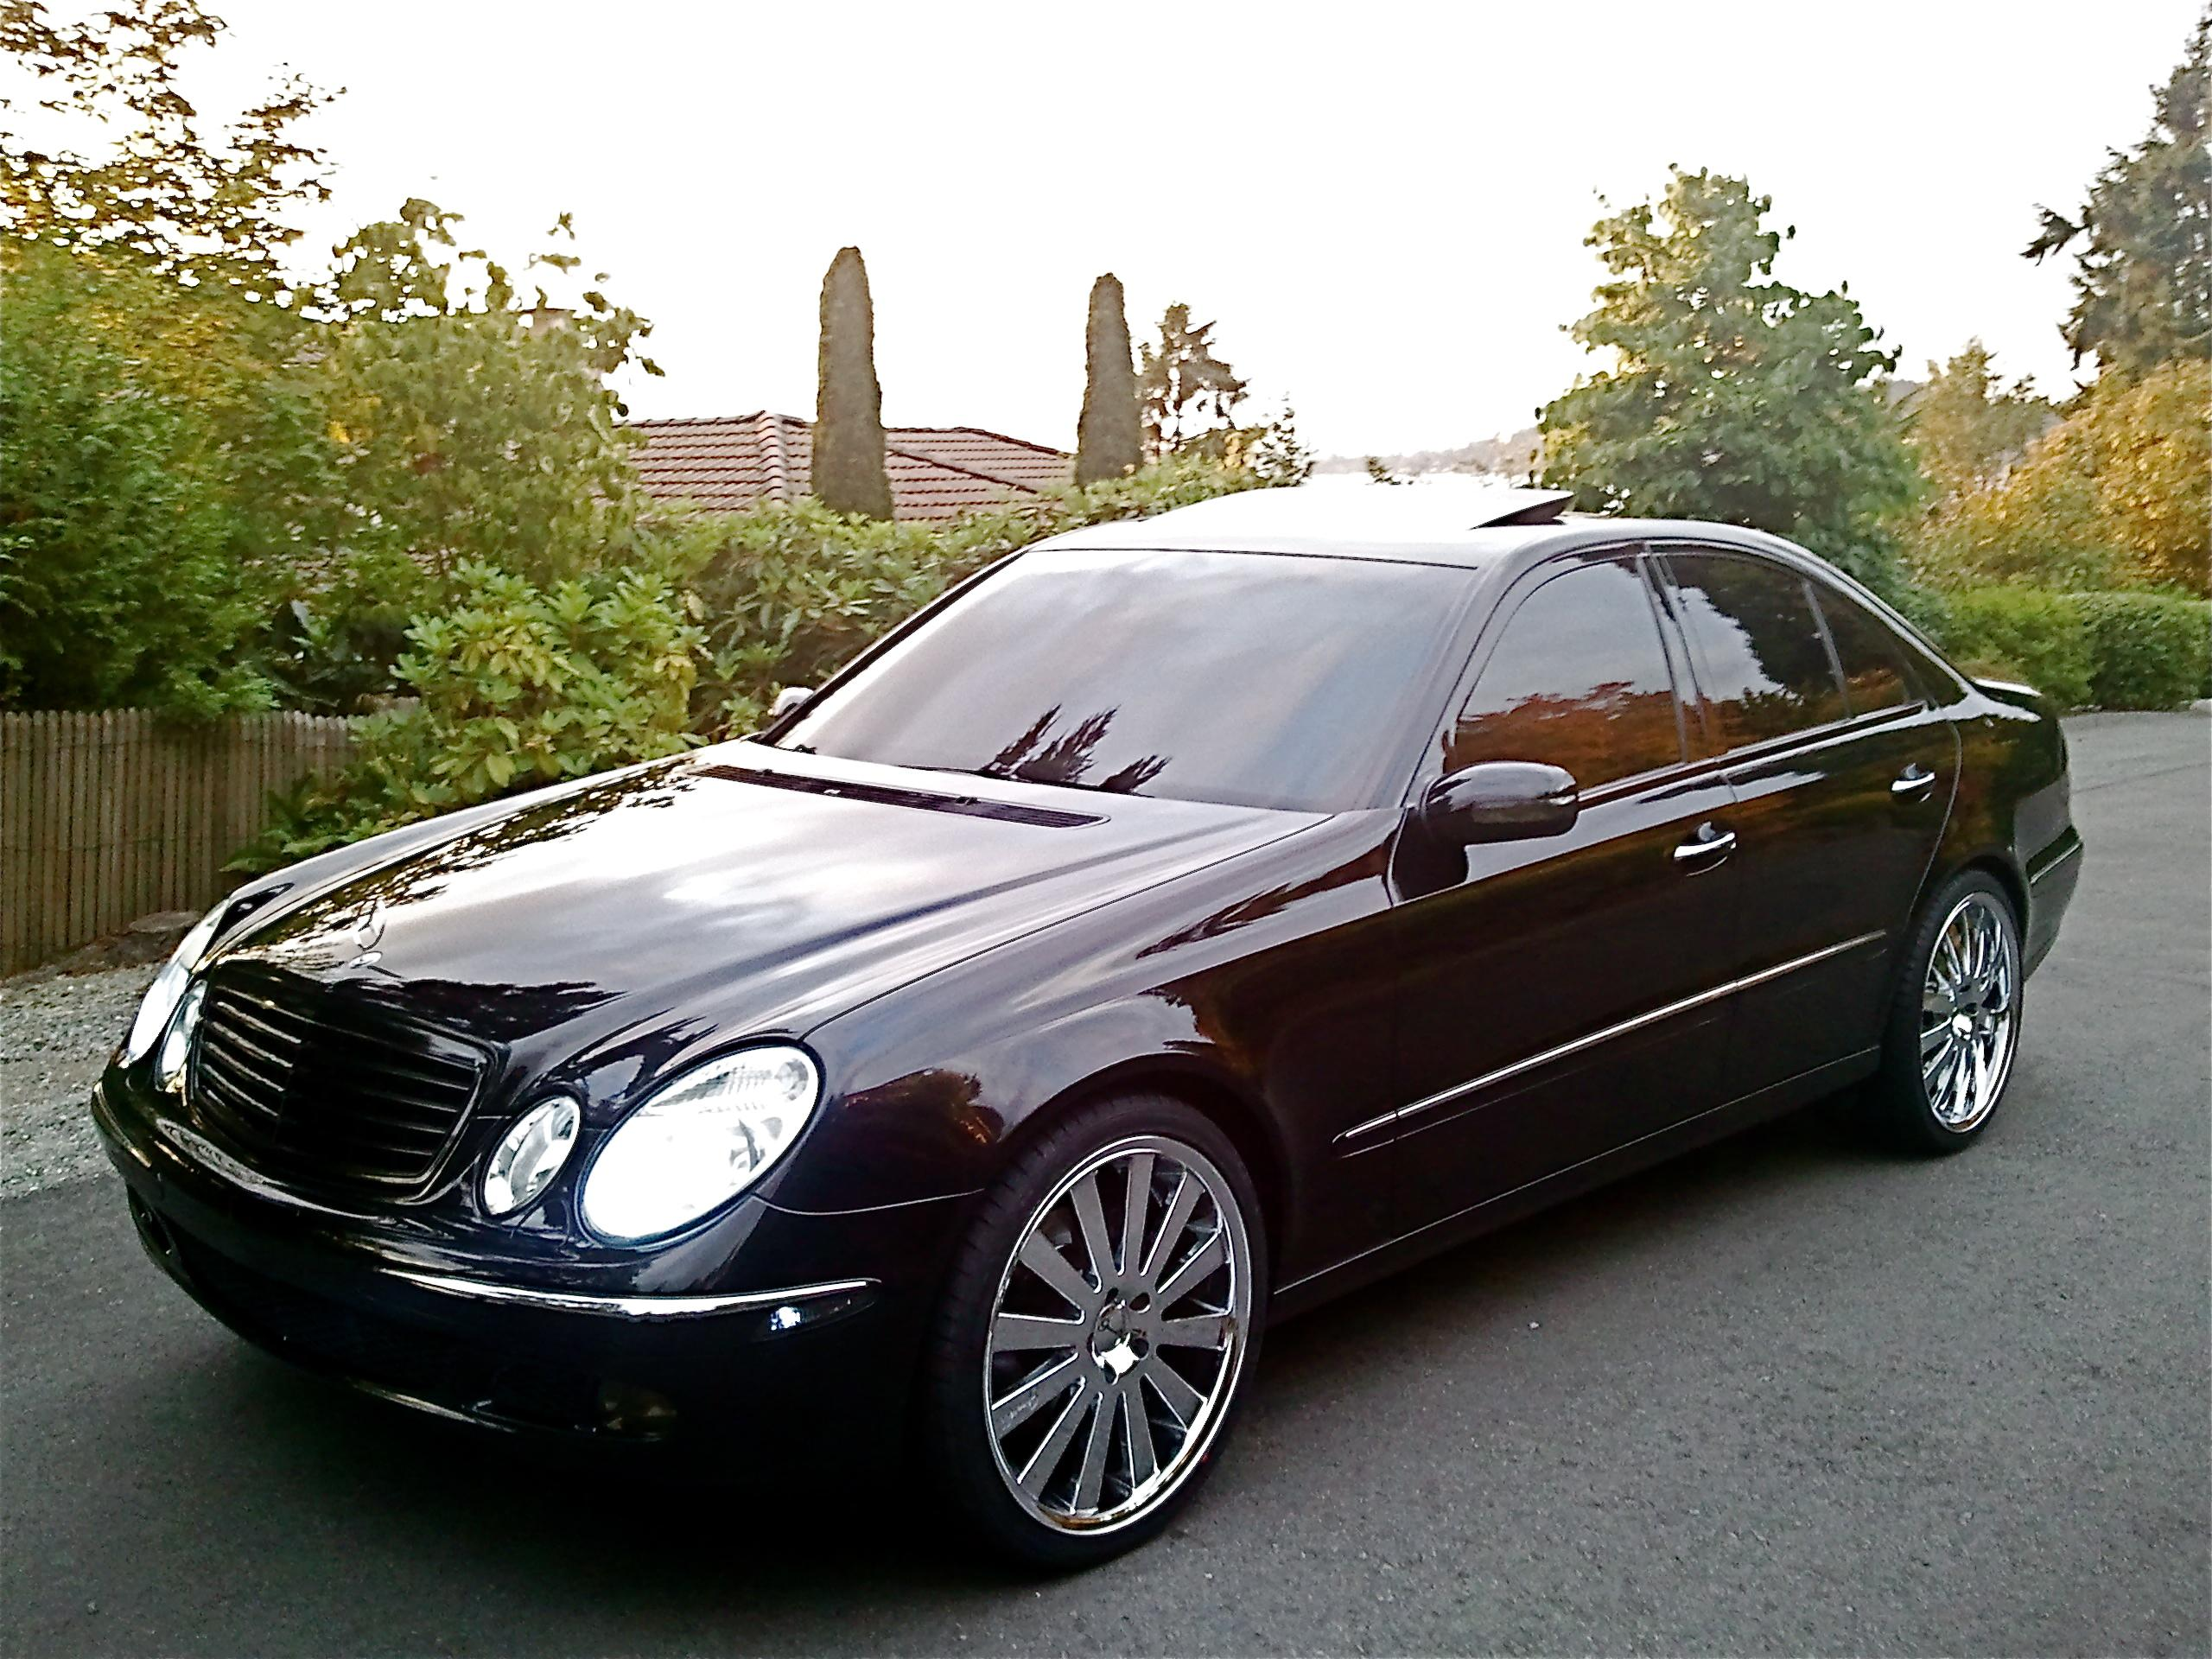 Eurowhipz666 2003 mercedes benz e classe500 sedan 4d specs for Mercedes benz 2003